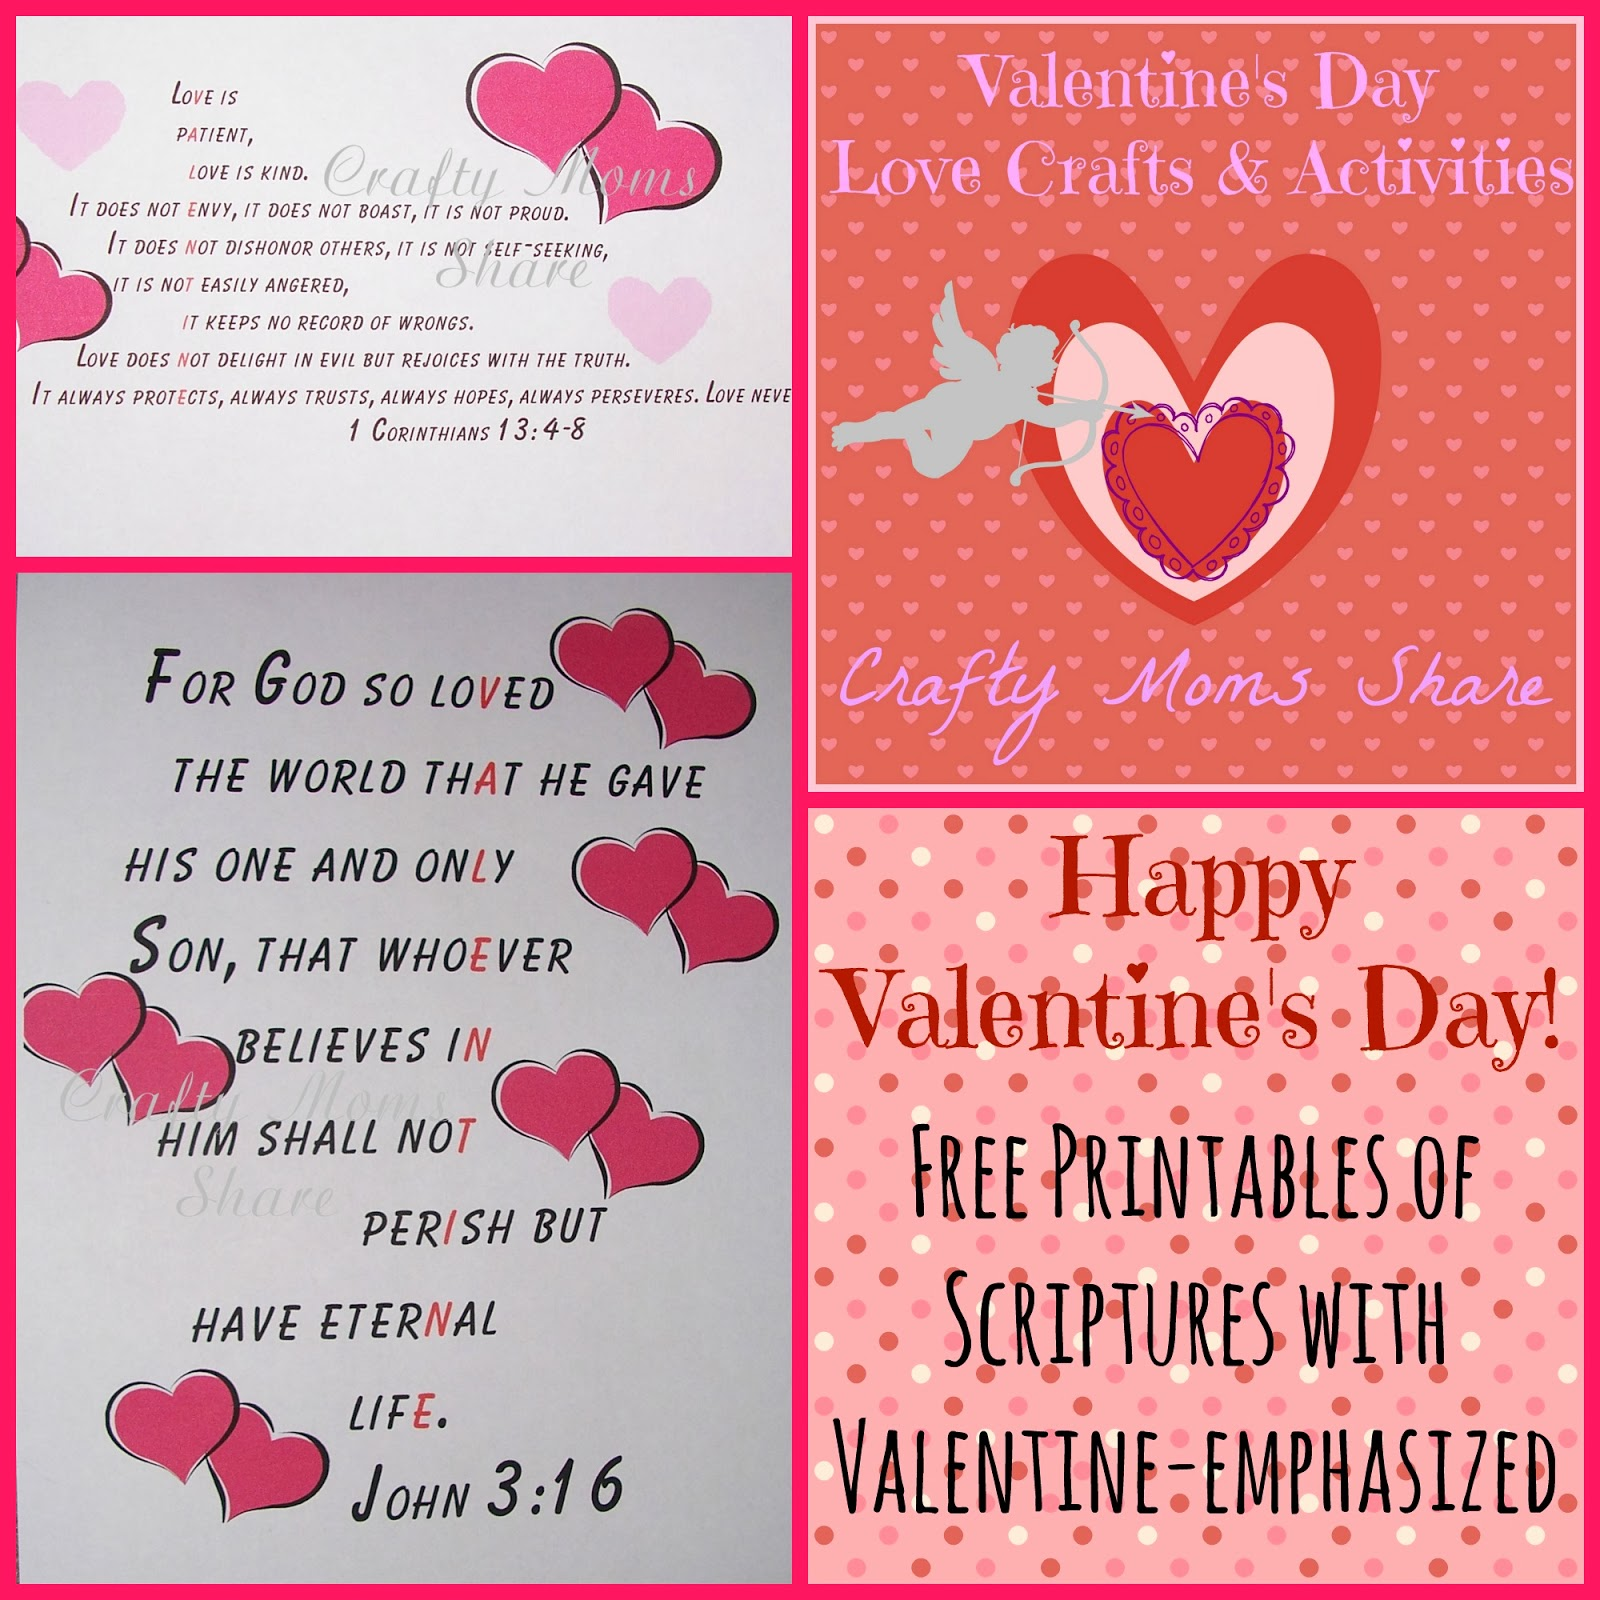 16 Valentine S Day Quotes To Share The Love: Crafty Moms Share: Free Valentine-Emphasized Scripture